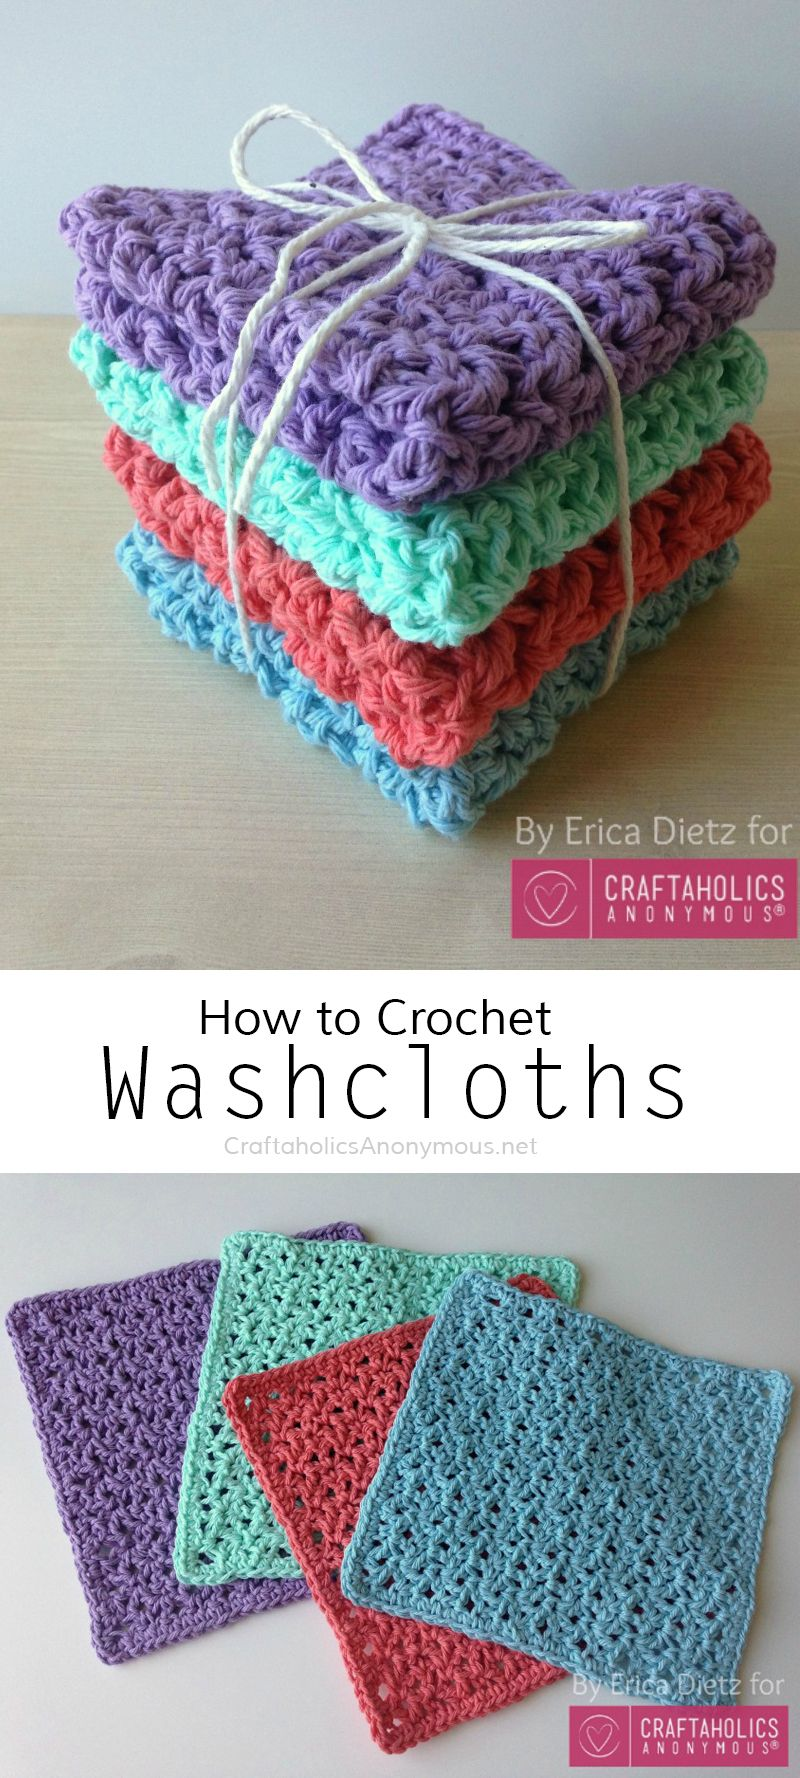 How To Crochet Washcloths Using The Blossom Stitch  Love The Look Of This  Pretty